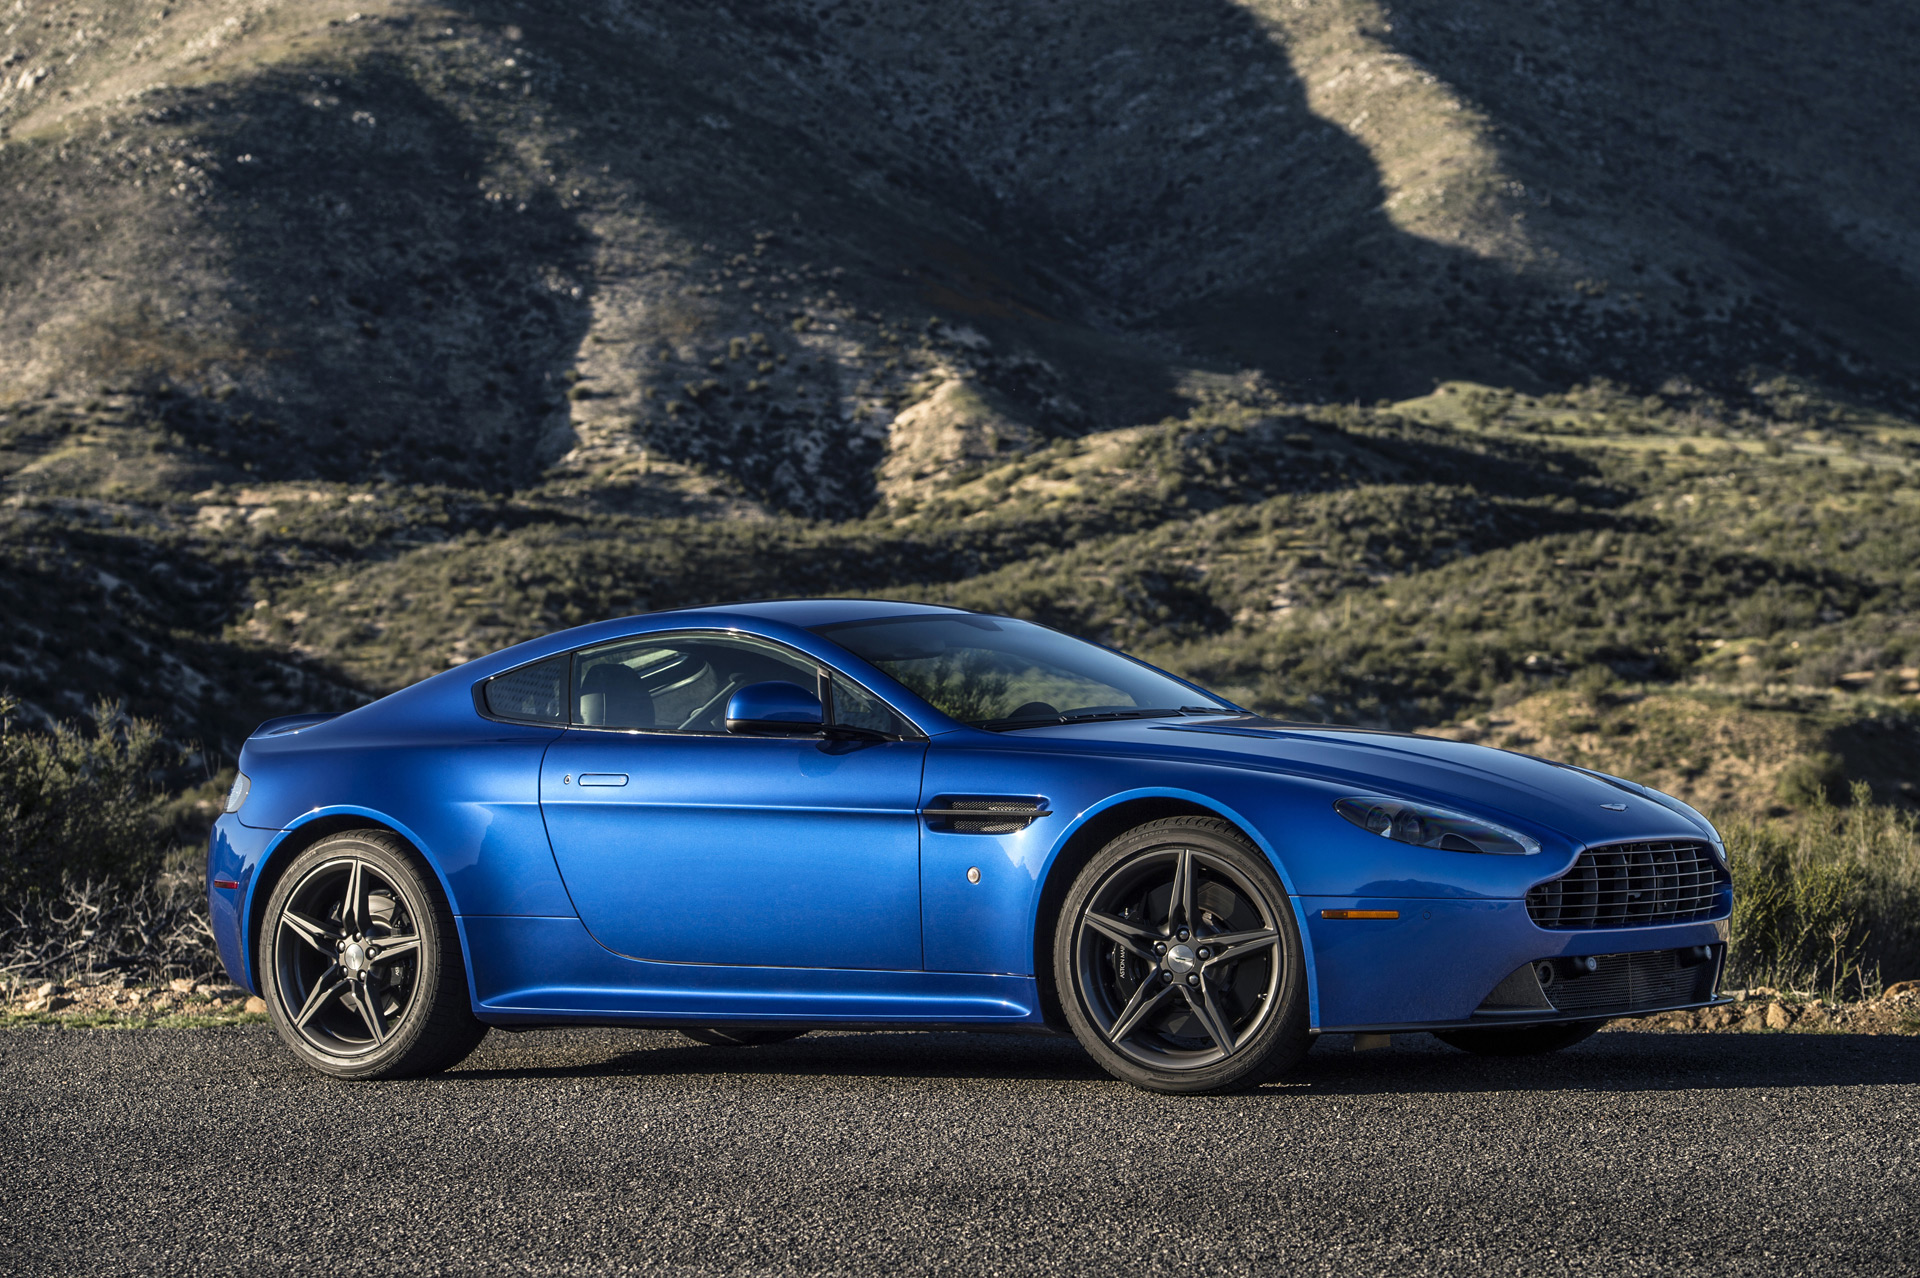 2017 aston martin vantage priced from 137 820. Black Bedroom Furniture Sets. Home Design Ideas